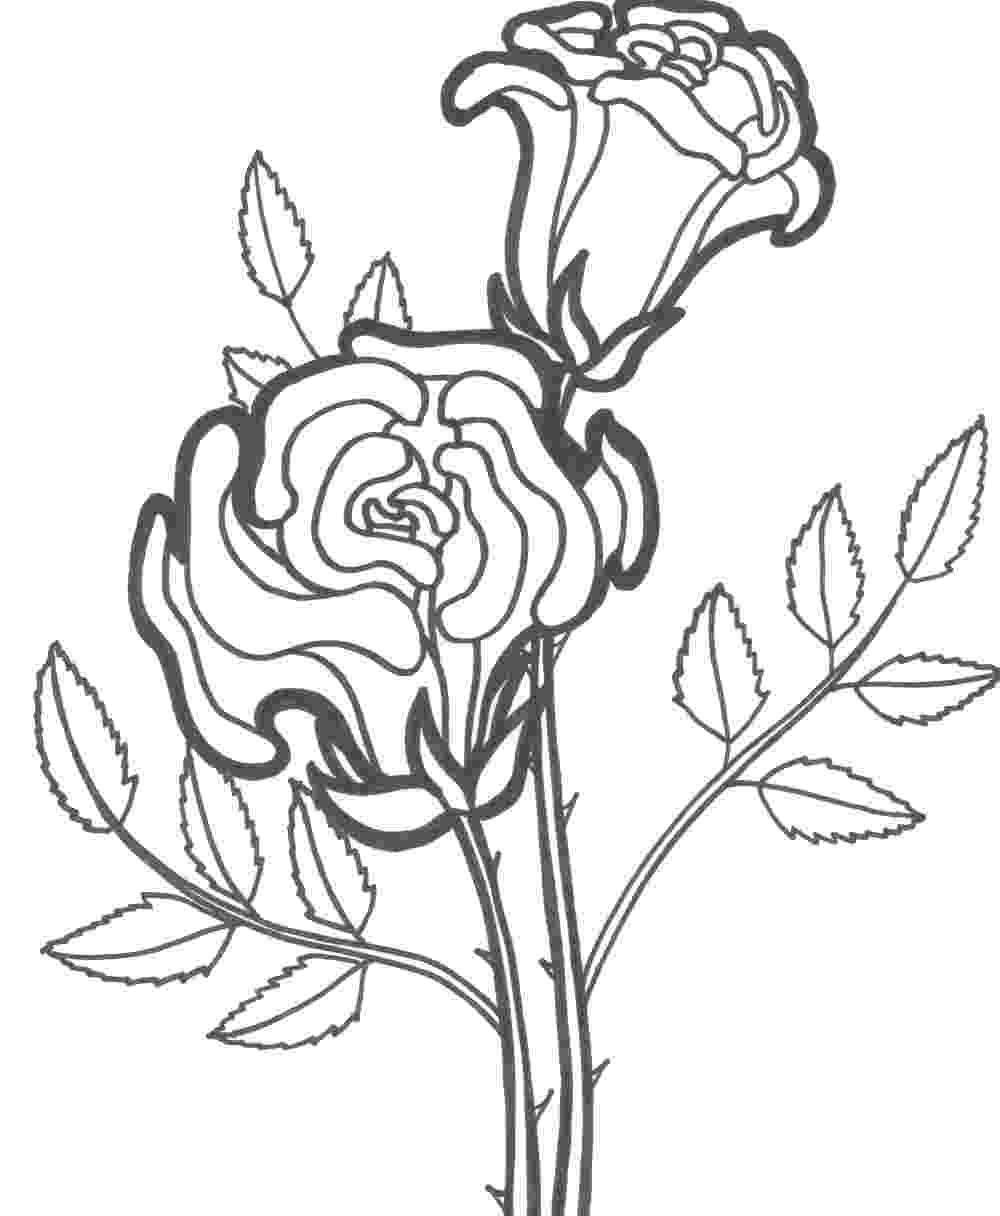 colouring pictures of roses coloring pages for kids rose coloring pages colouring of pictures roses